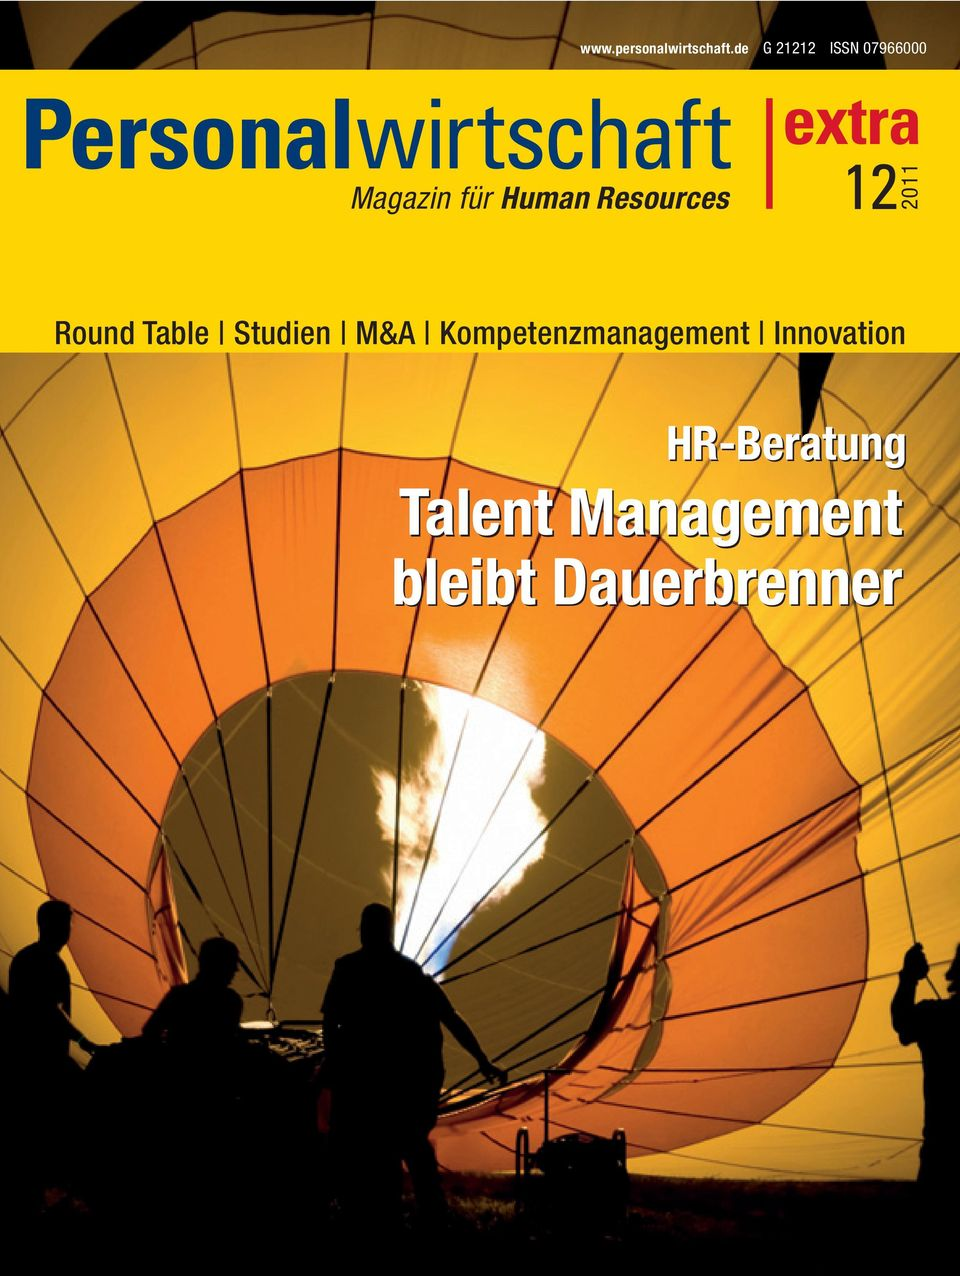 Round Table Studien M&A Kompetenzmanagement